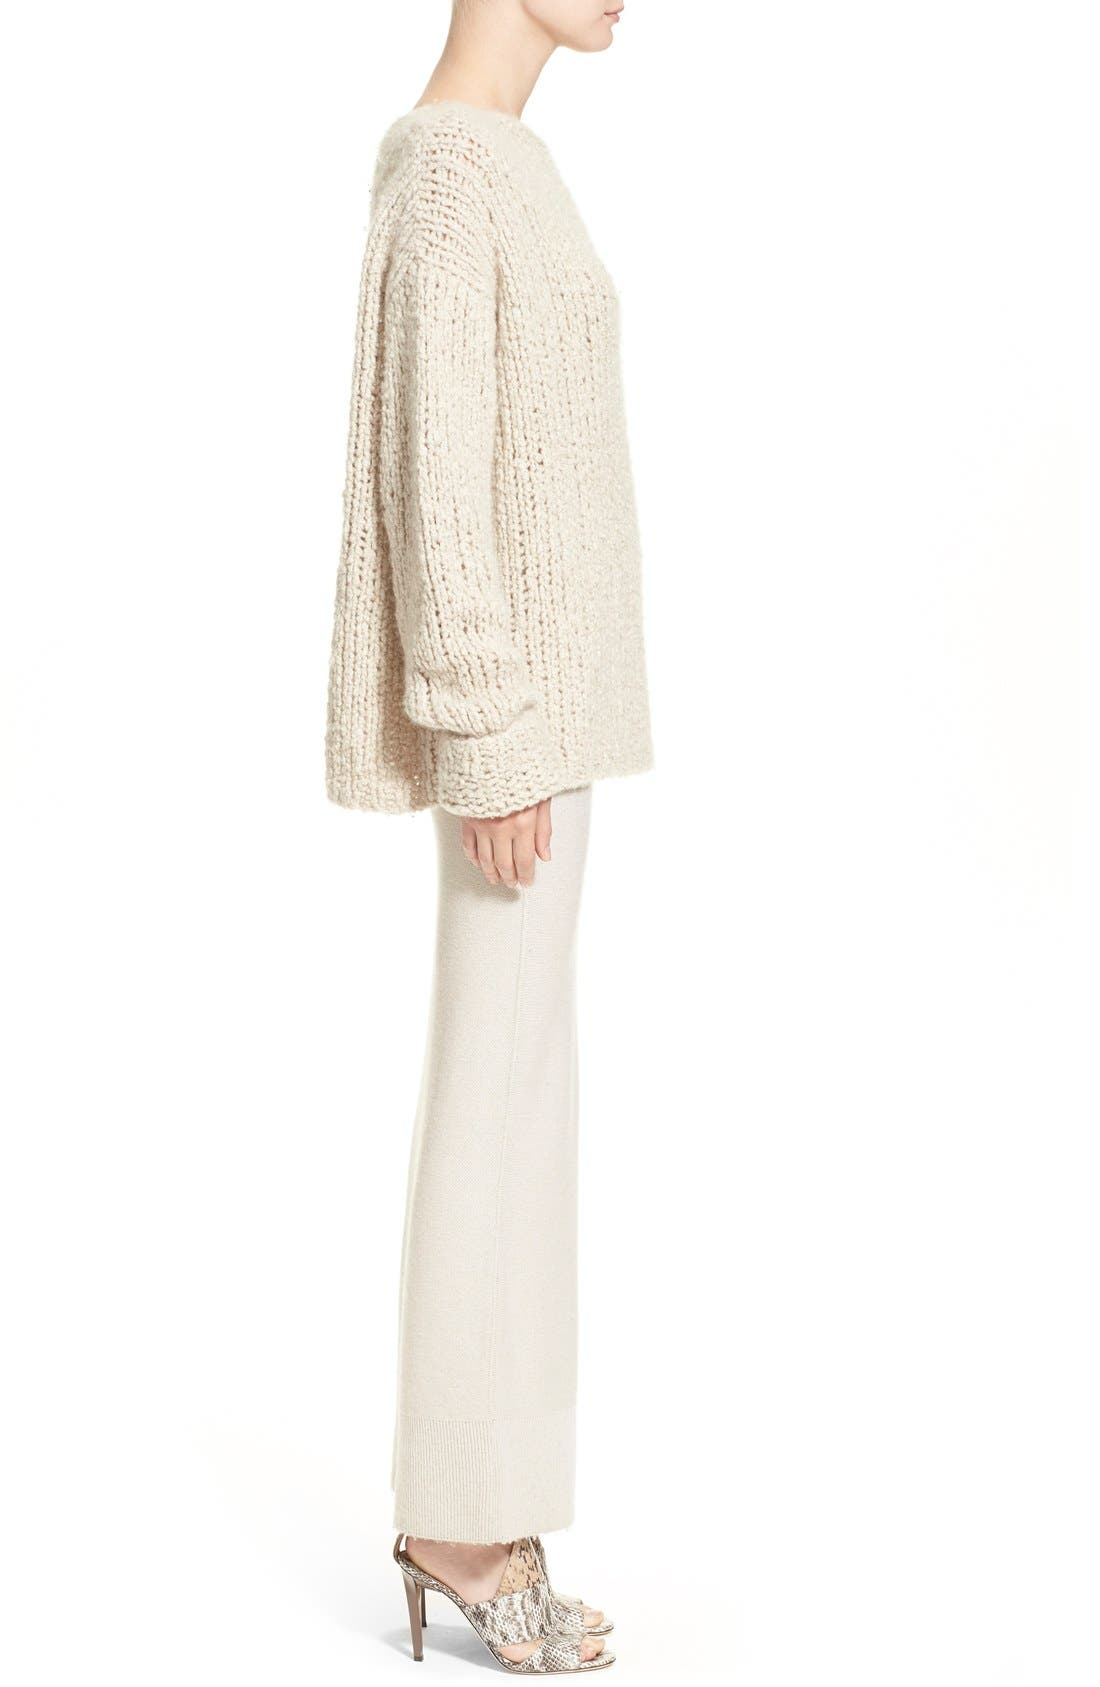 Donna KaranCollection Hand Knit Cashmere Sweater,                             Alternate thumbnail 3, color,                             282